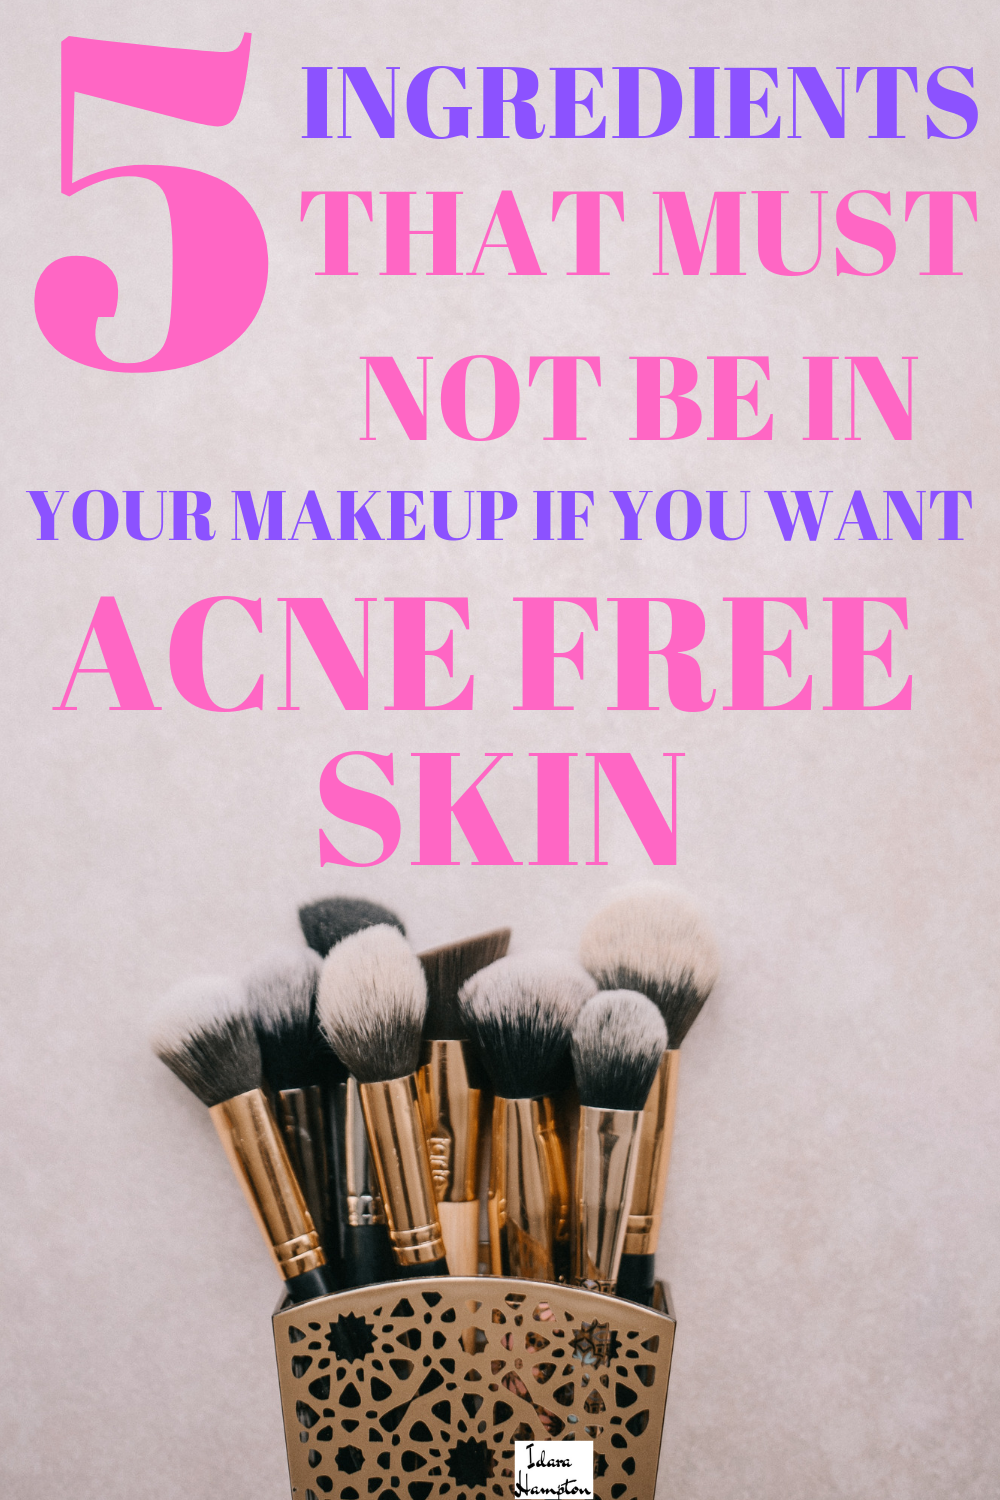 Wearing makeup the wrong kind of makeup can make acne